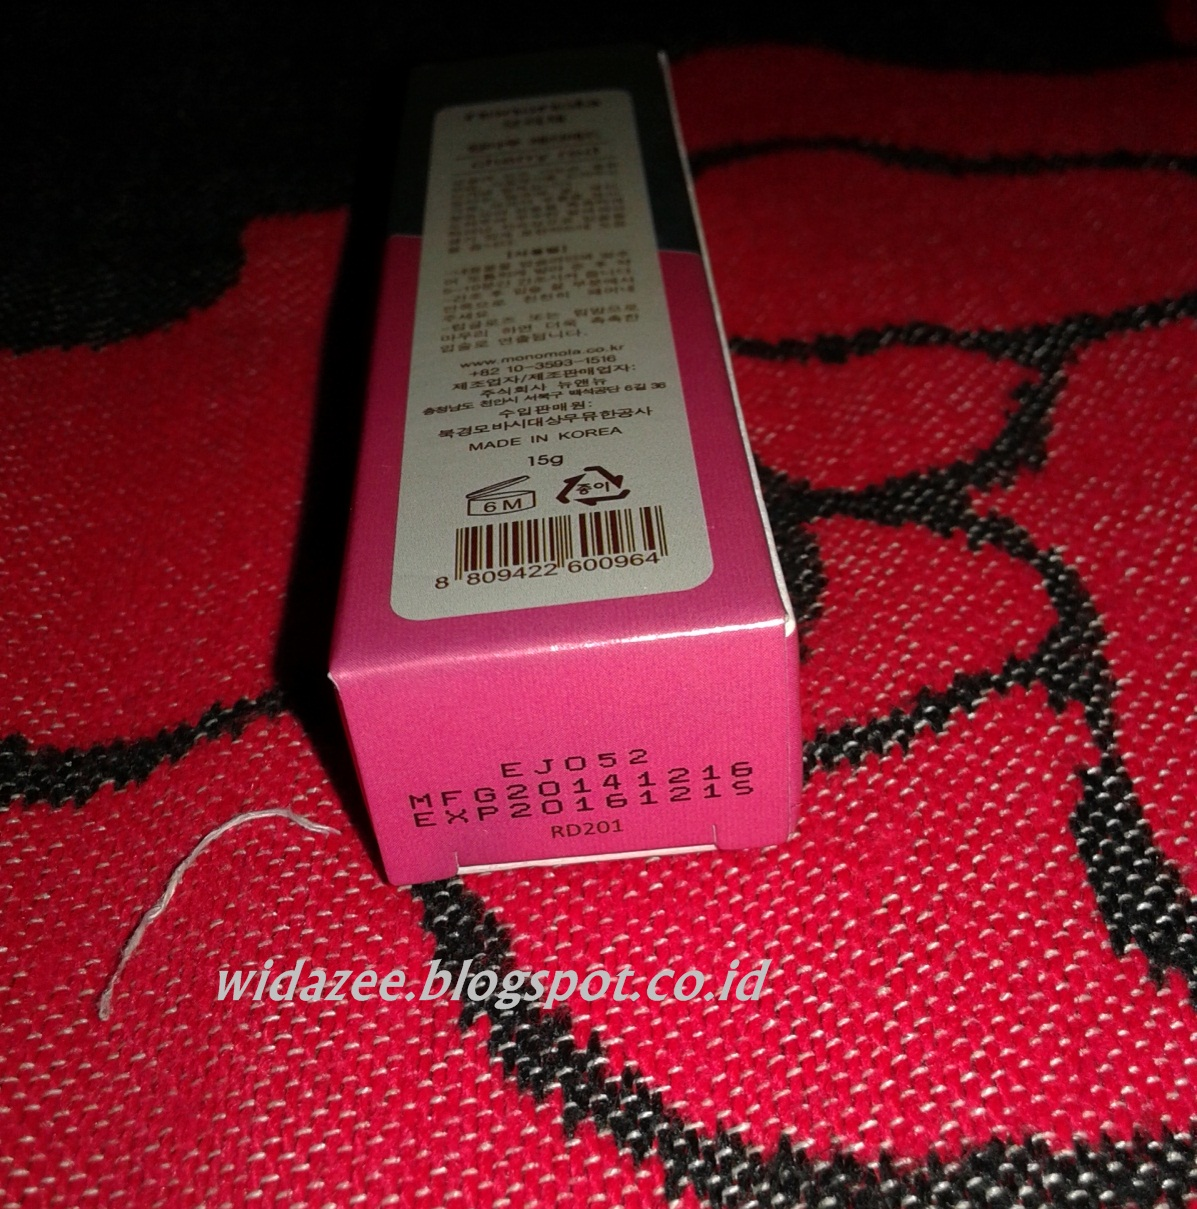 REVIEW: Monomola Wow Long Lasting Lip Color - Cherry Red